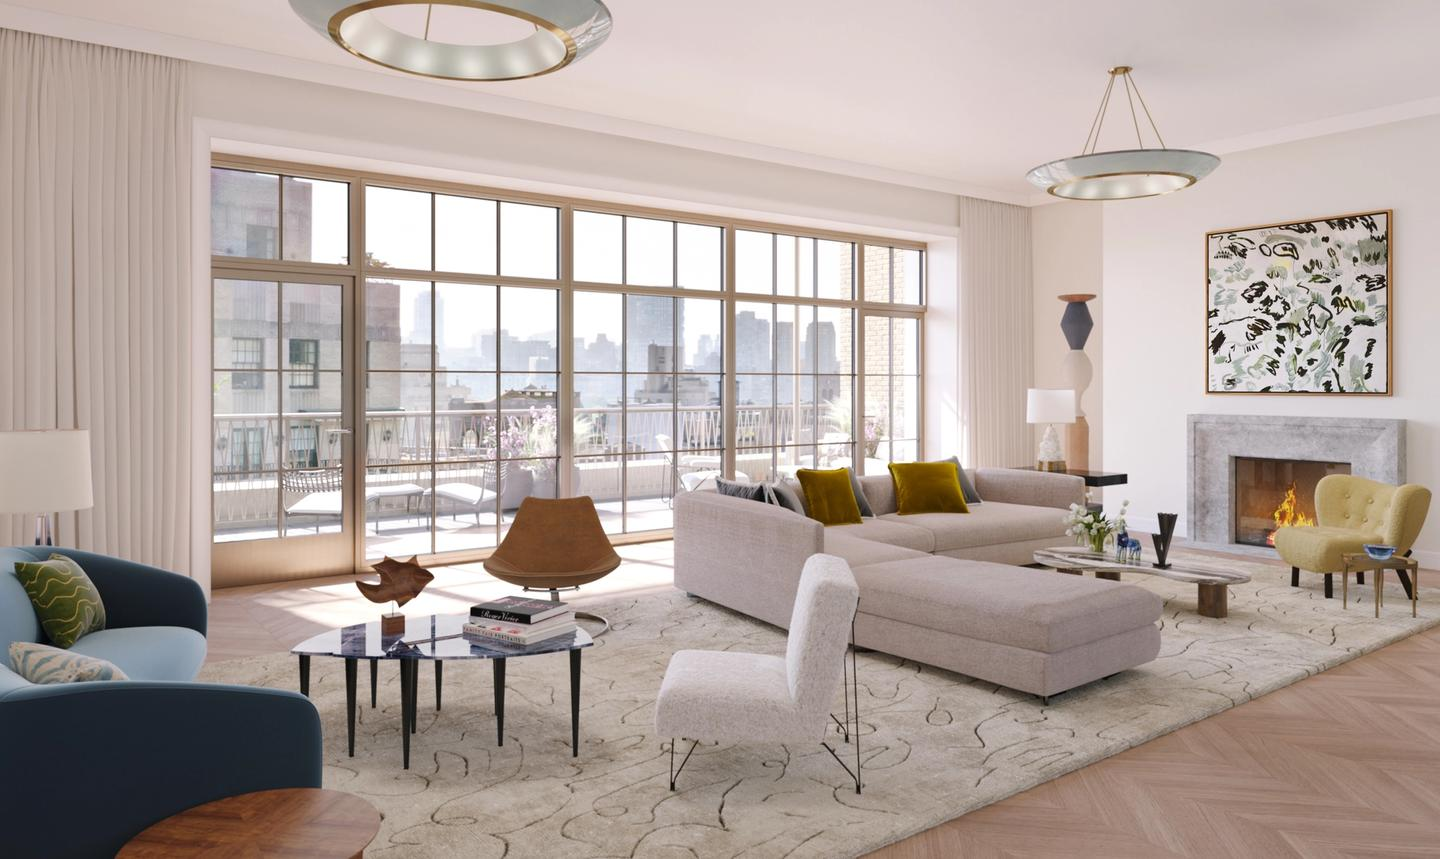 Penthouse 16 living room with terrace and fireplace